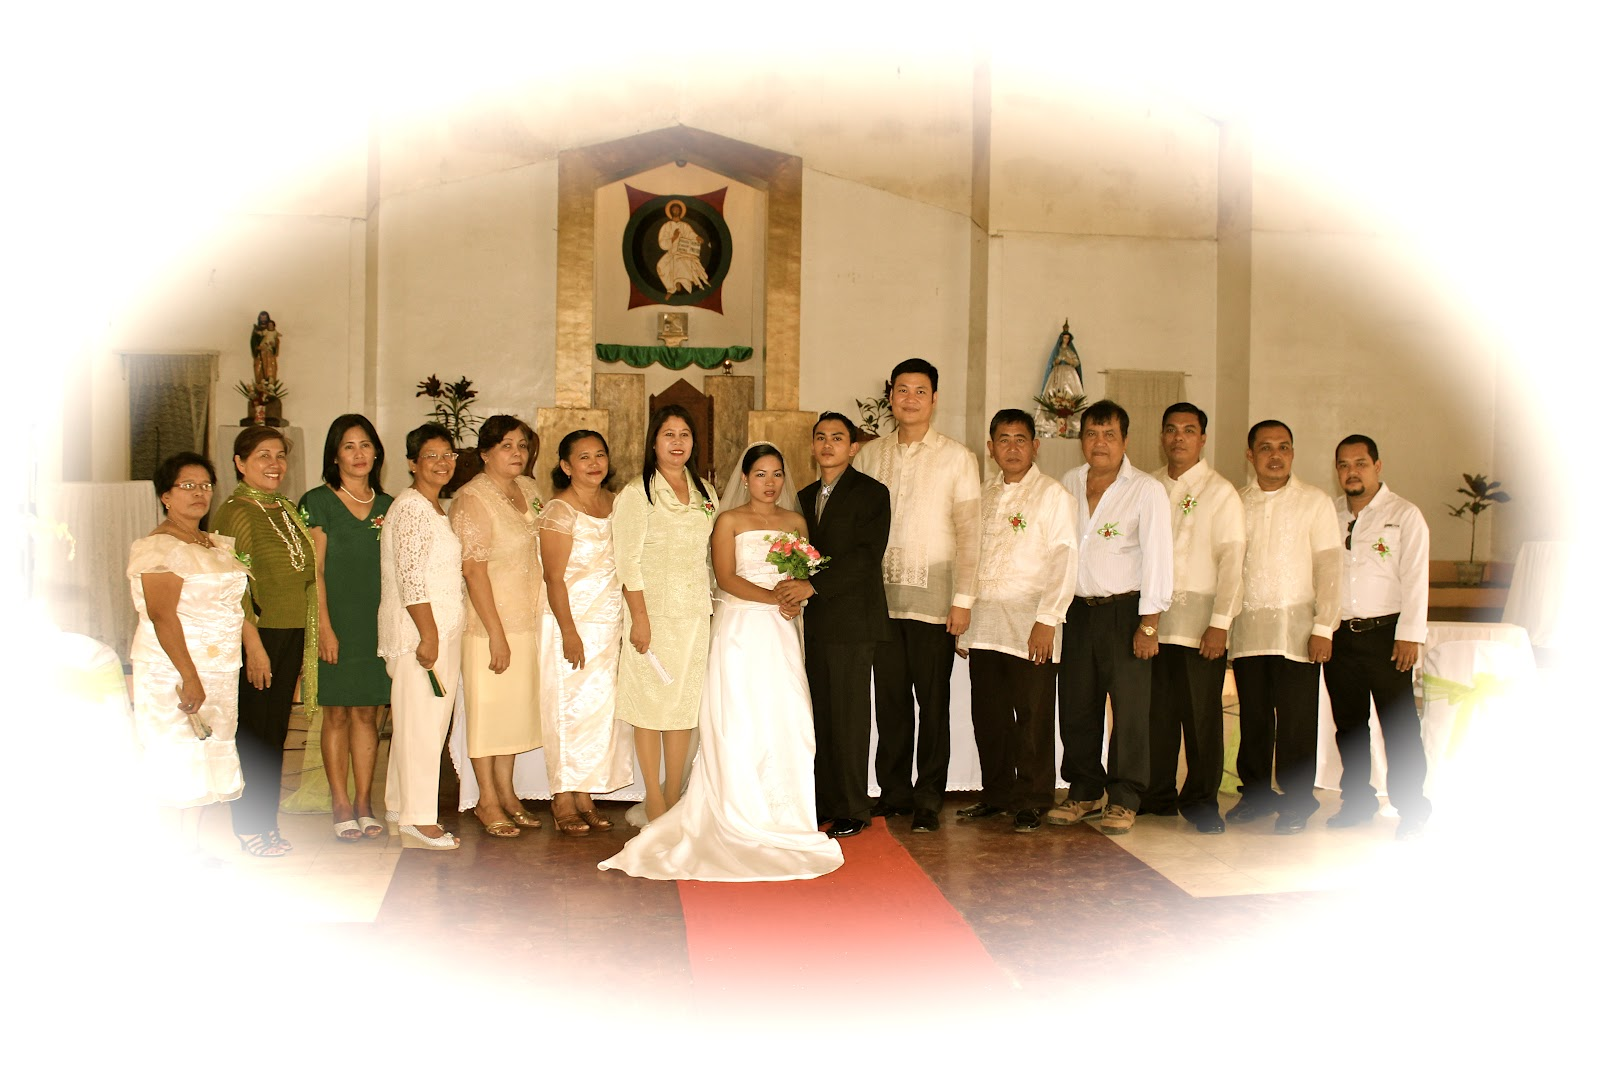 essential and formal requisites of marriage in the family code of the philippines And that marriage shall remain in accordance with and as defined by our present family code of the philippines the formal requisites of marriage are: (1) the absence of any of the essential or formal requisites shall render the marriage void ab initio.